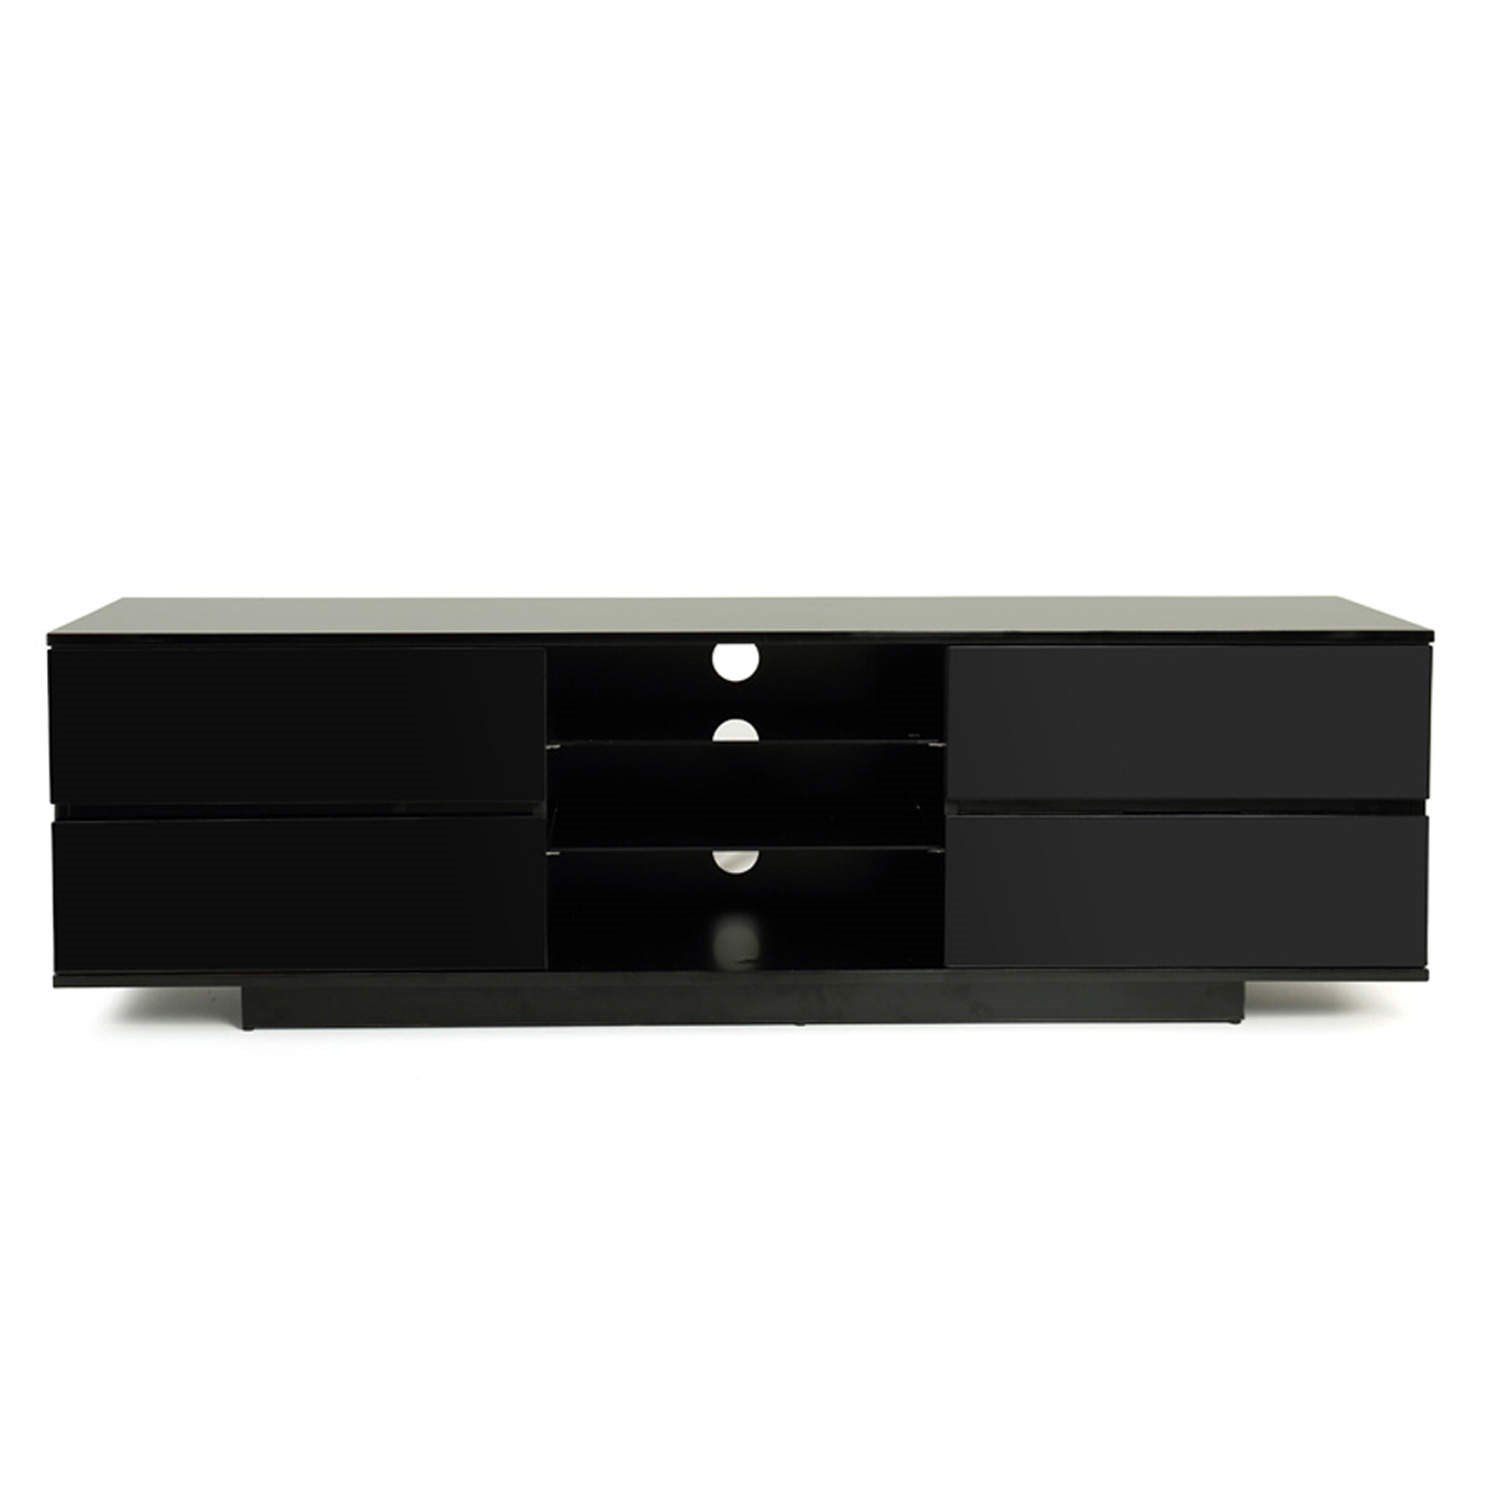 Boone Wooden TV Stand In Black High Gloss With Four Drawers_2